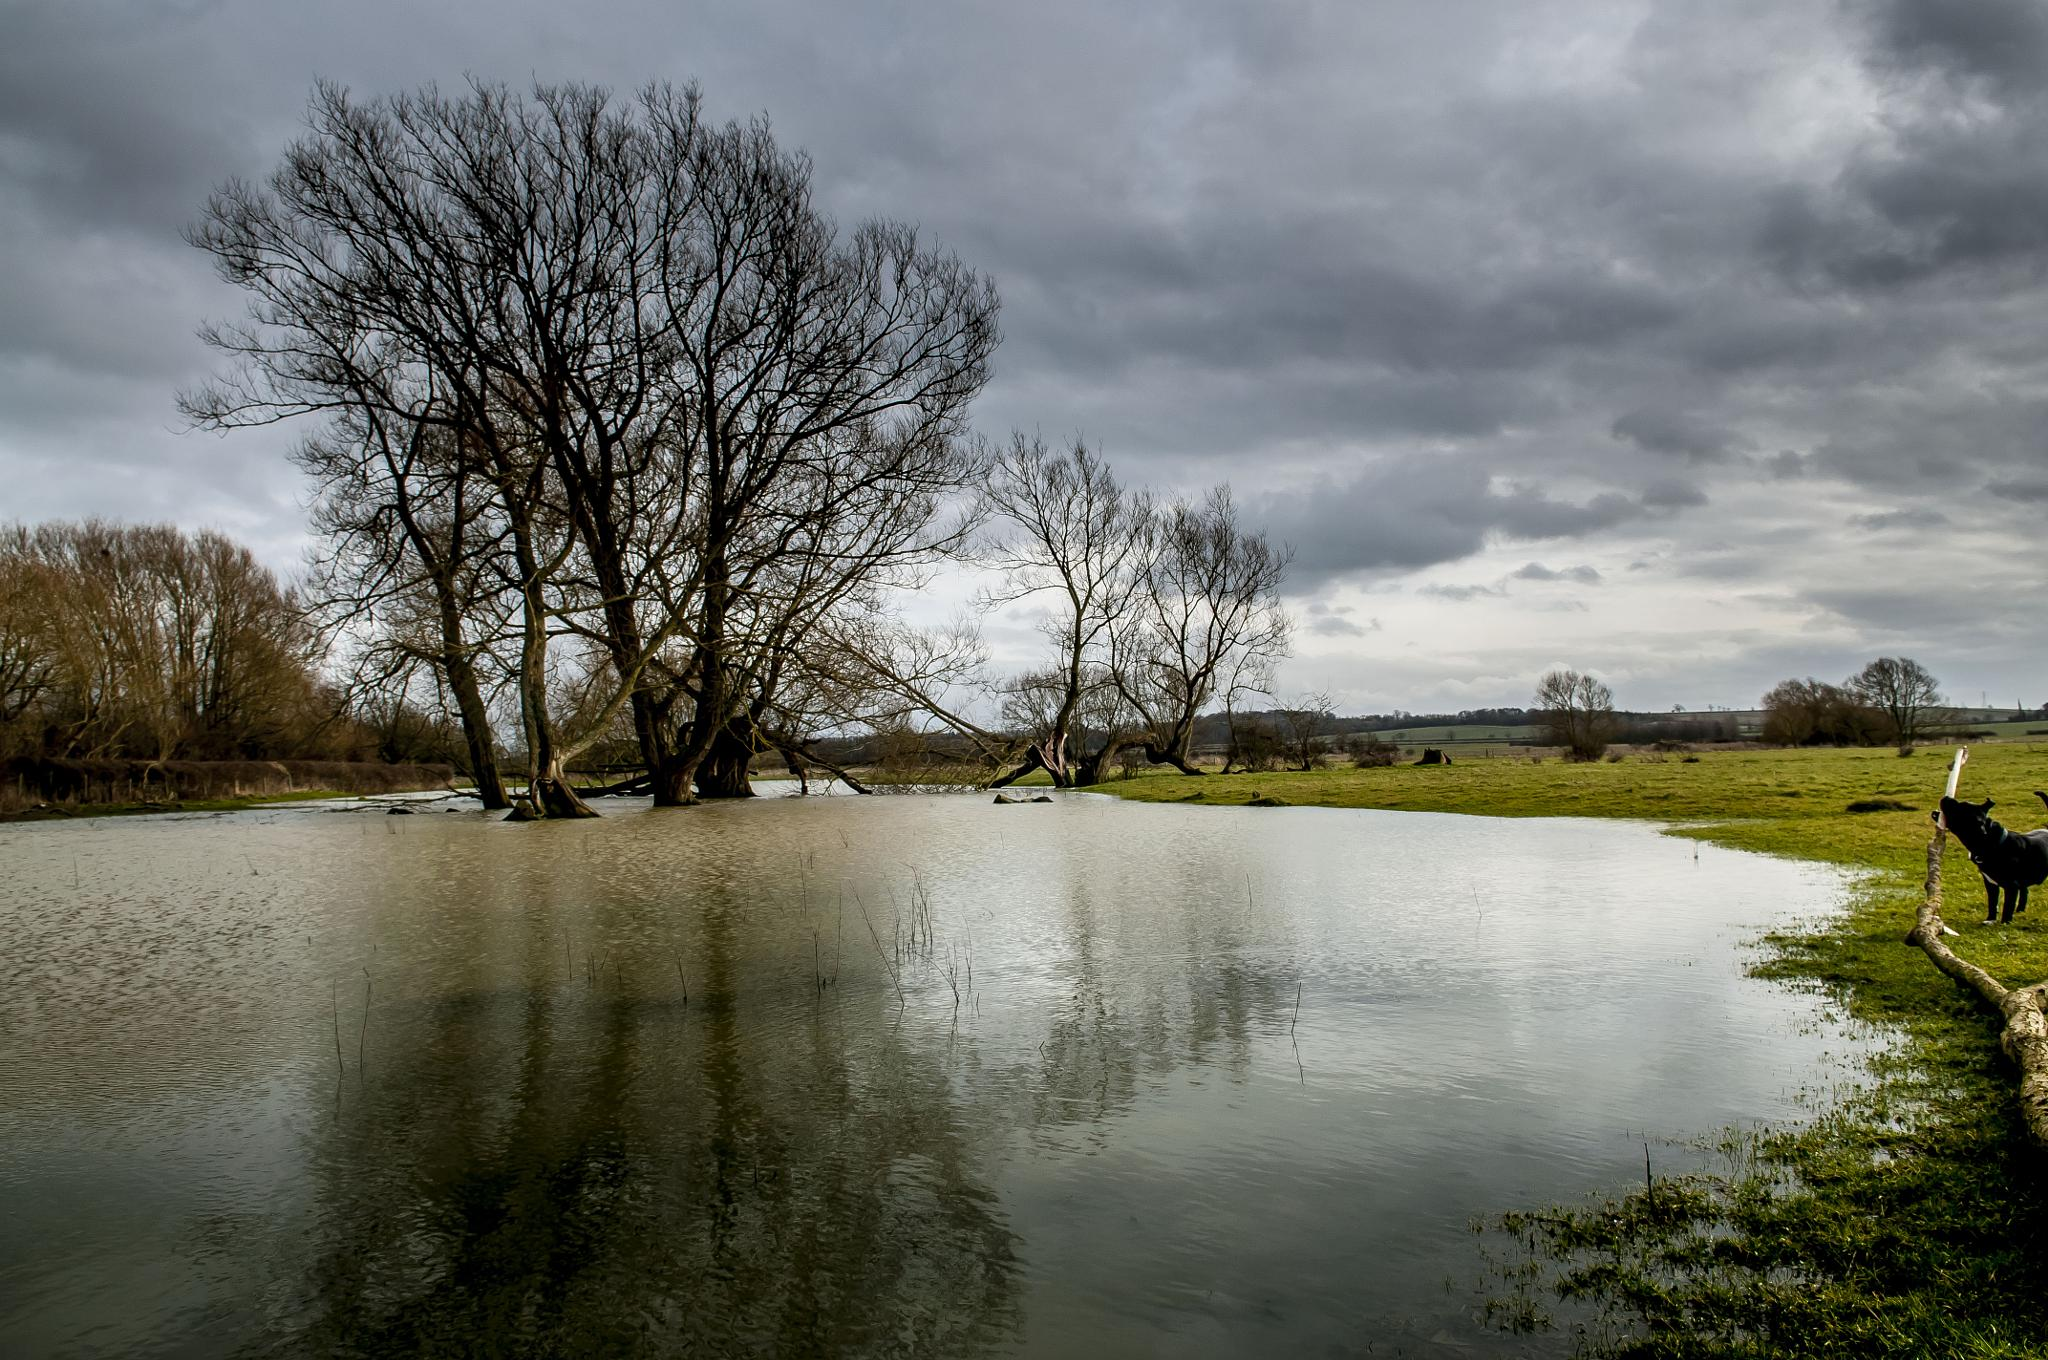 Rainy Skys and Puddles by Pete Feeny